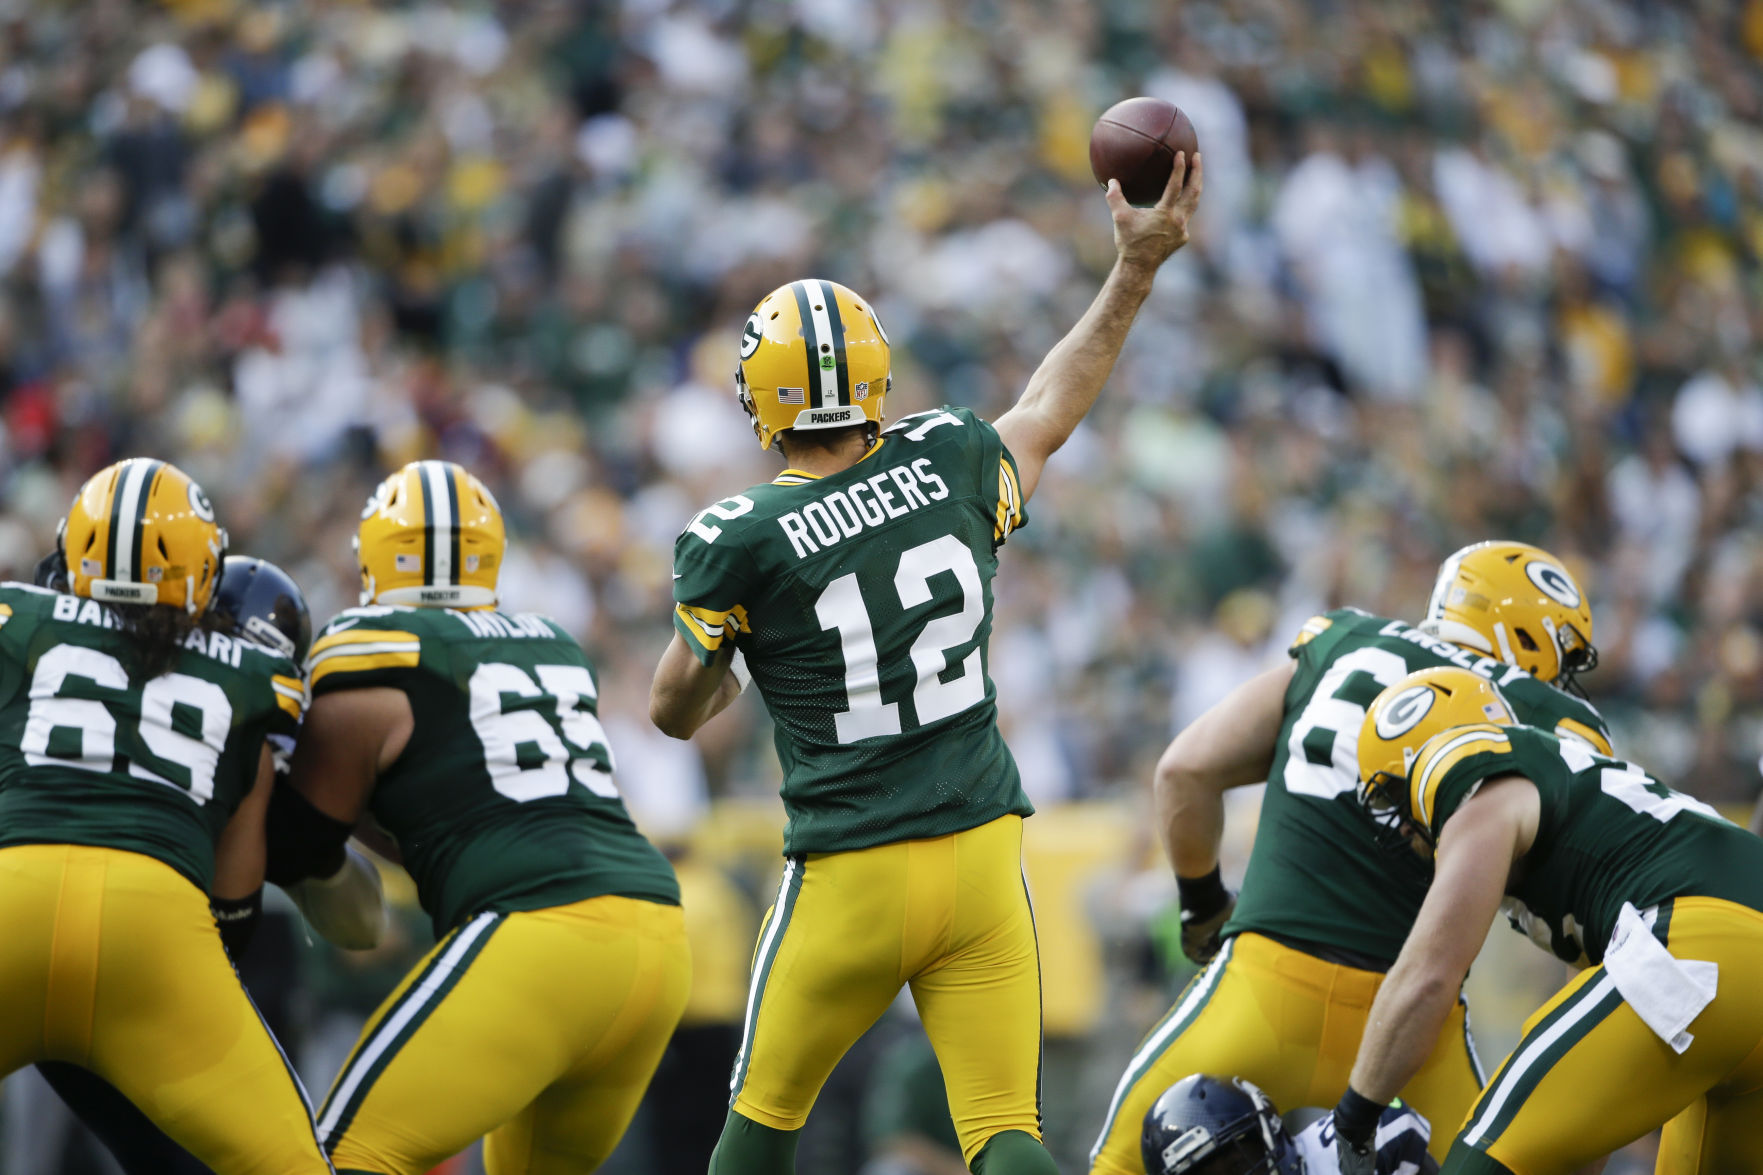 Green Bay Packers vs. Atlanta Falcons Preview and Prediction